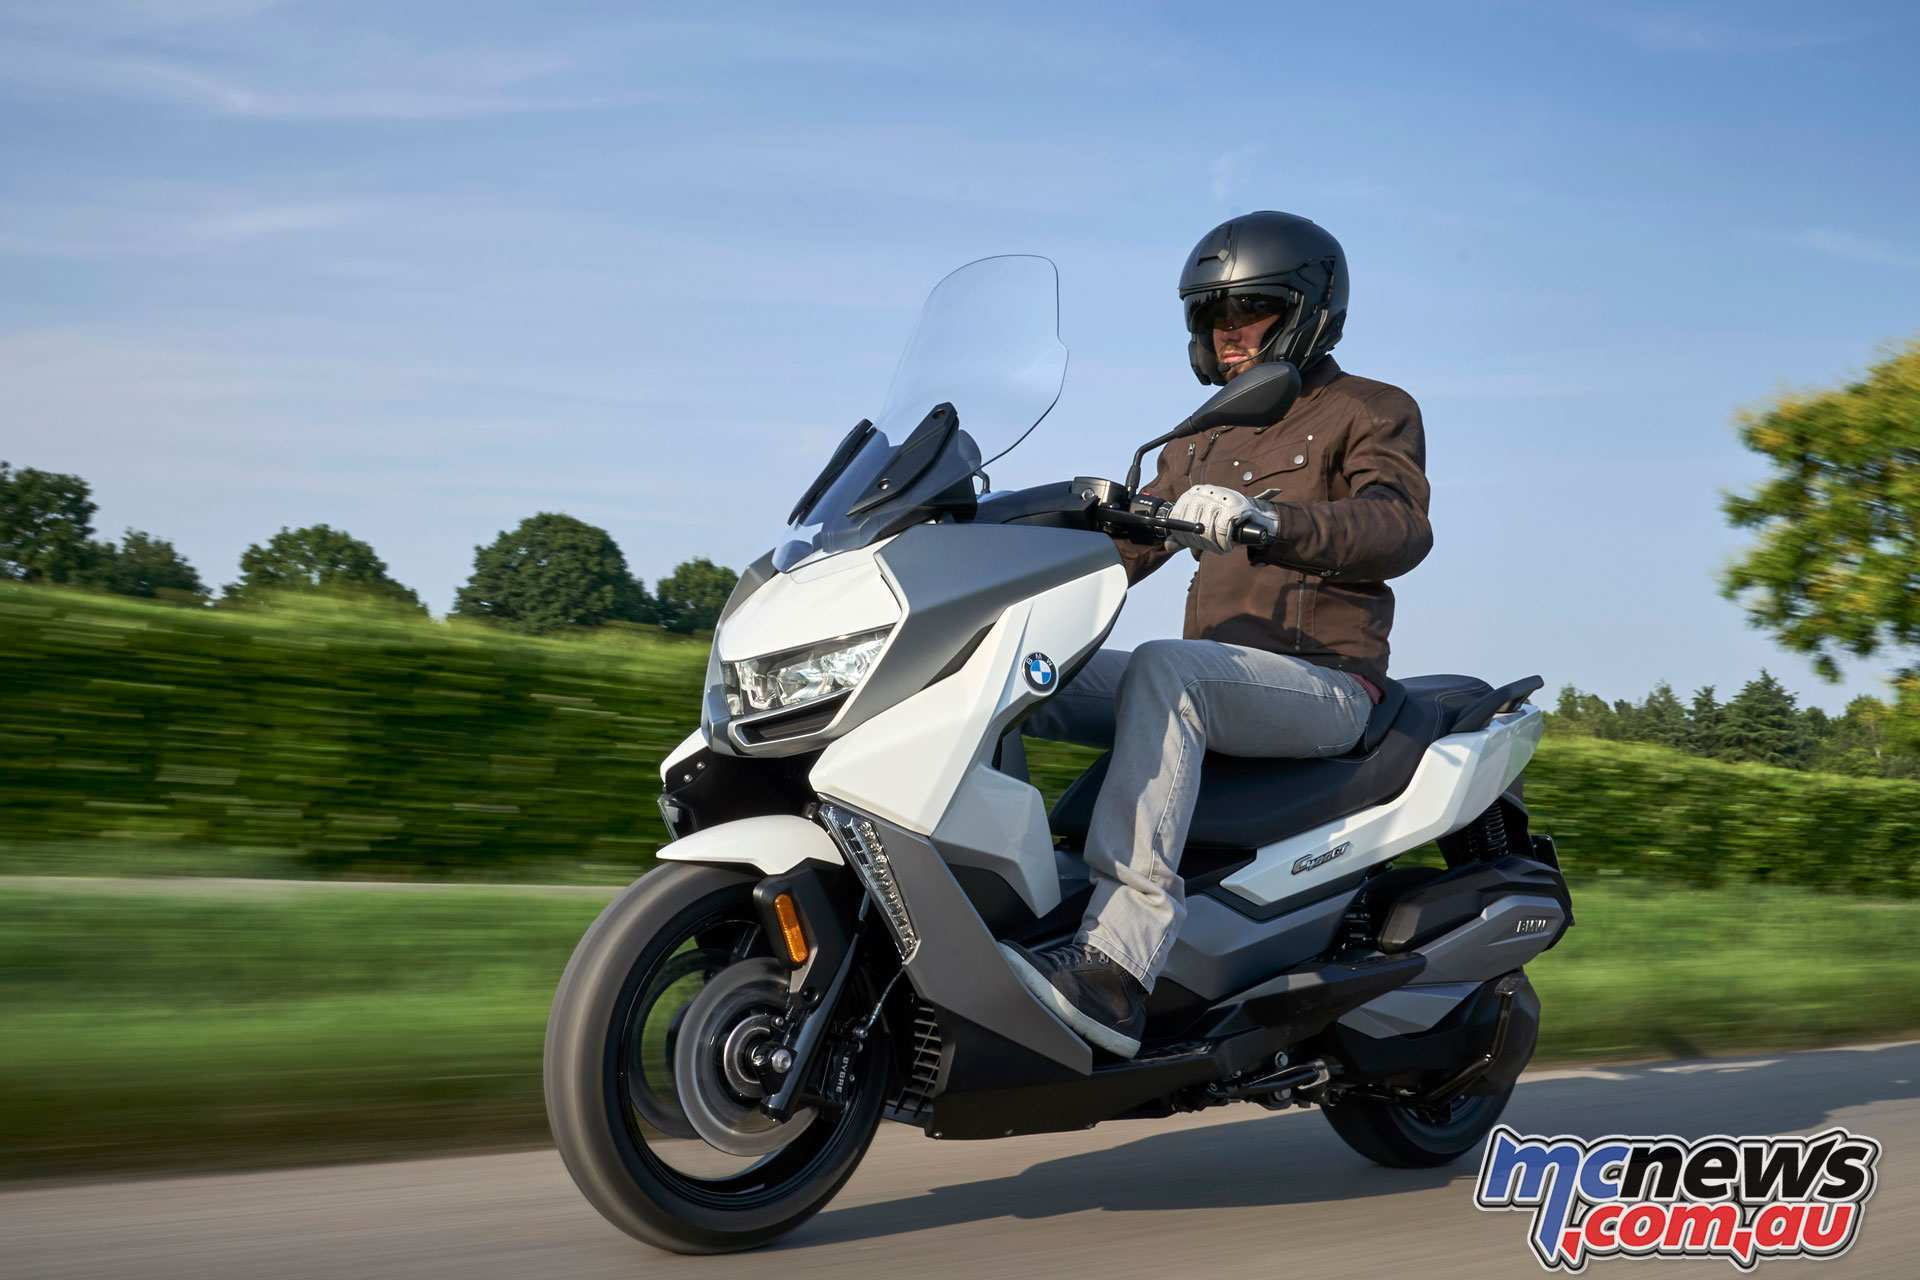 36 New Bmw C 2019 History for Bmw C 2019